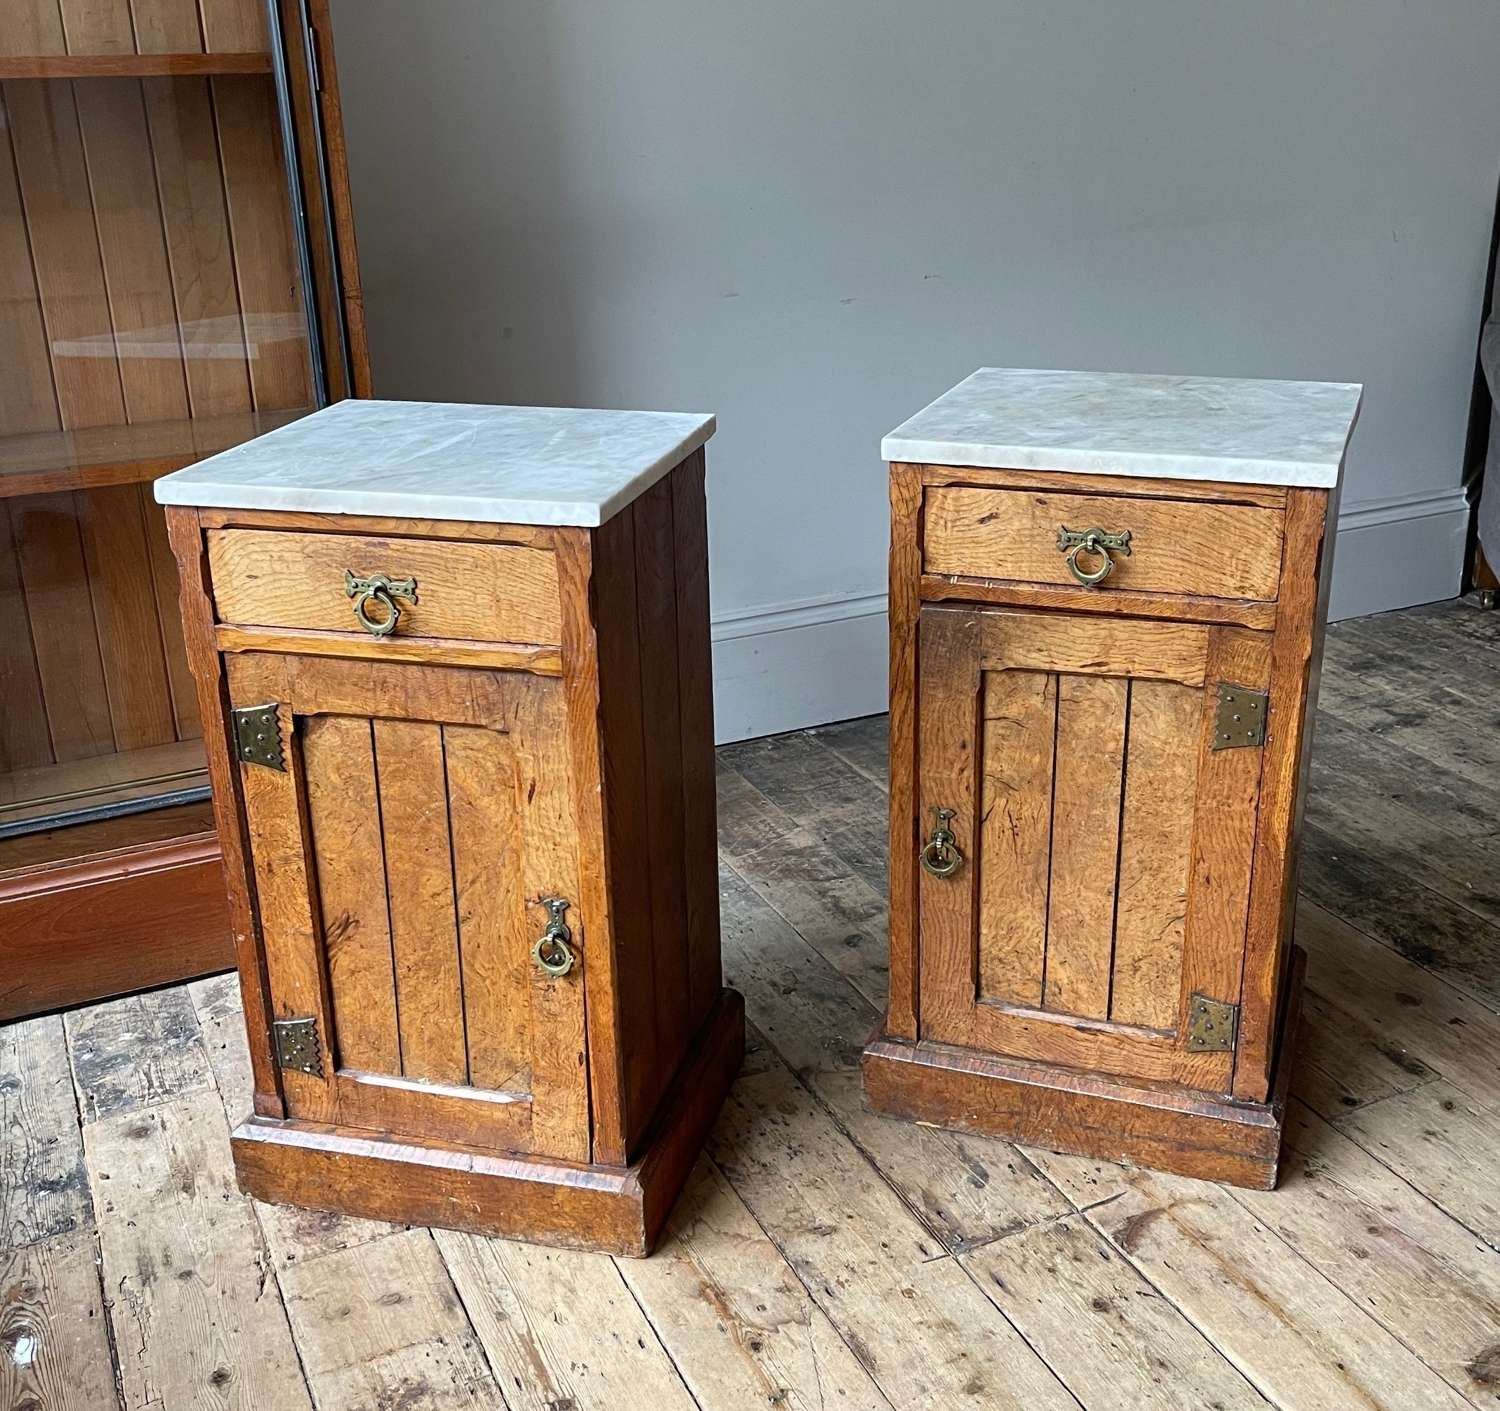 A pair of 19th century bedside cabinets